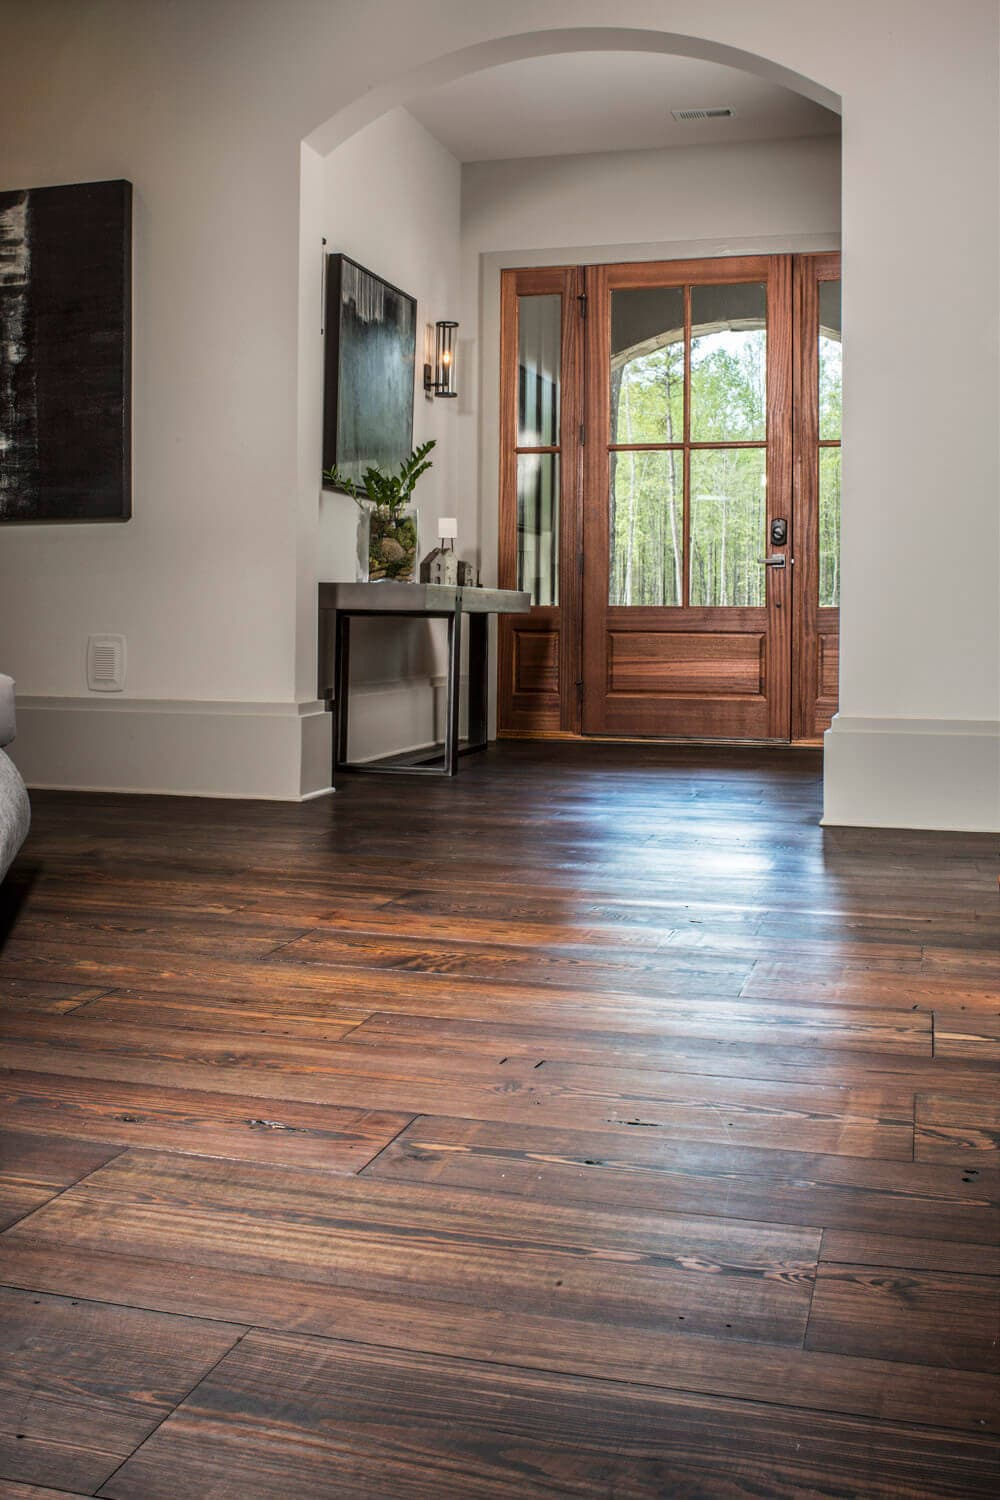 plain sawn heart pine floor with a view to the front door